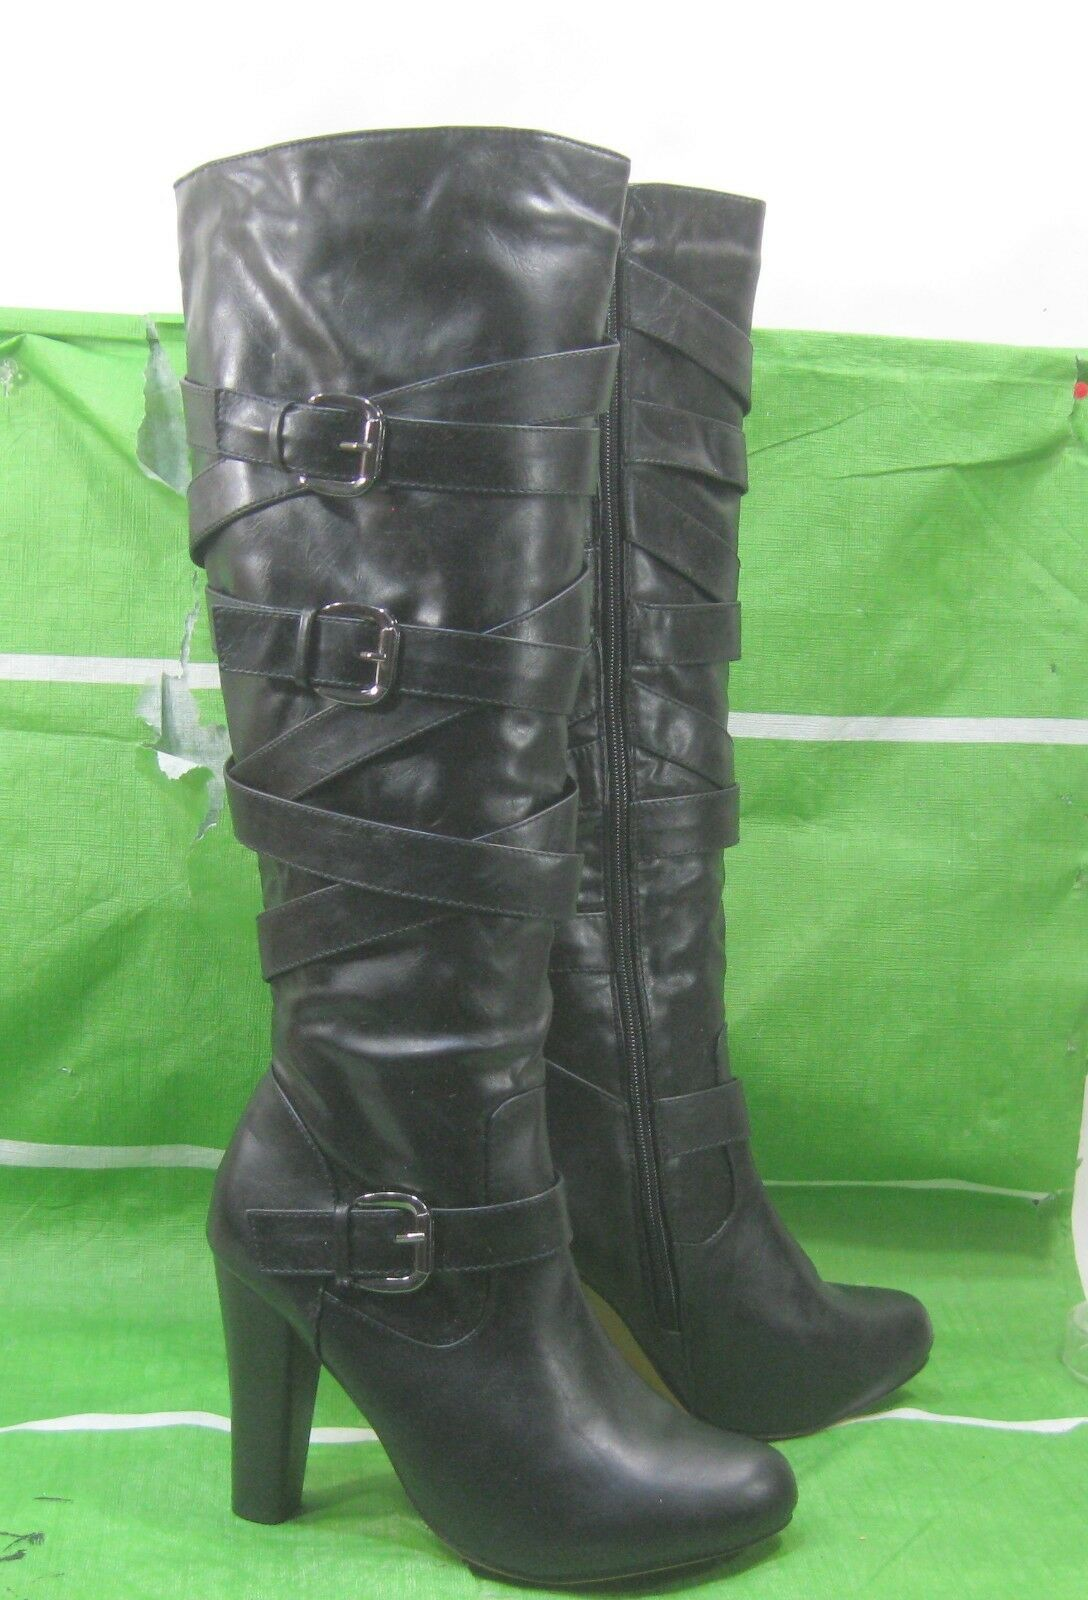 New ladies Black 4.5  High High Heel Round Toe Sexy Knee Boots Size 8